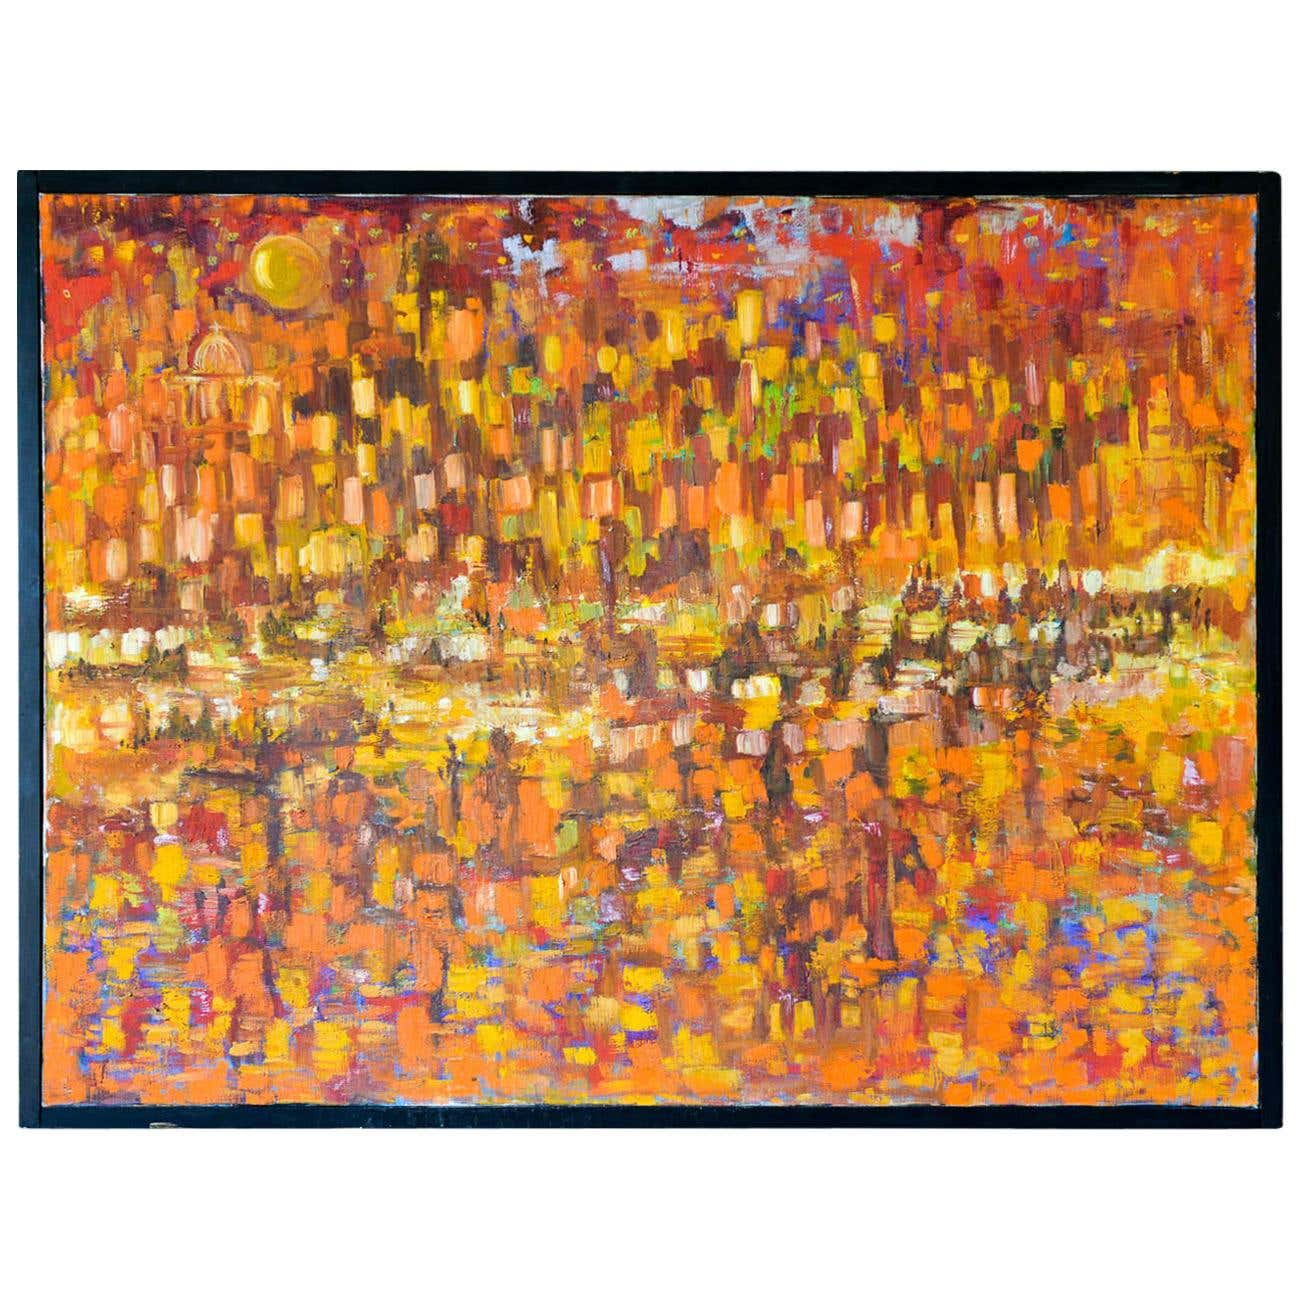 Collision Coalescence Original Abstract Oil PAINTING on Canvas